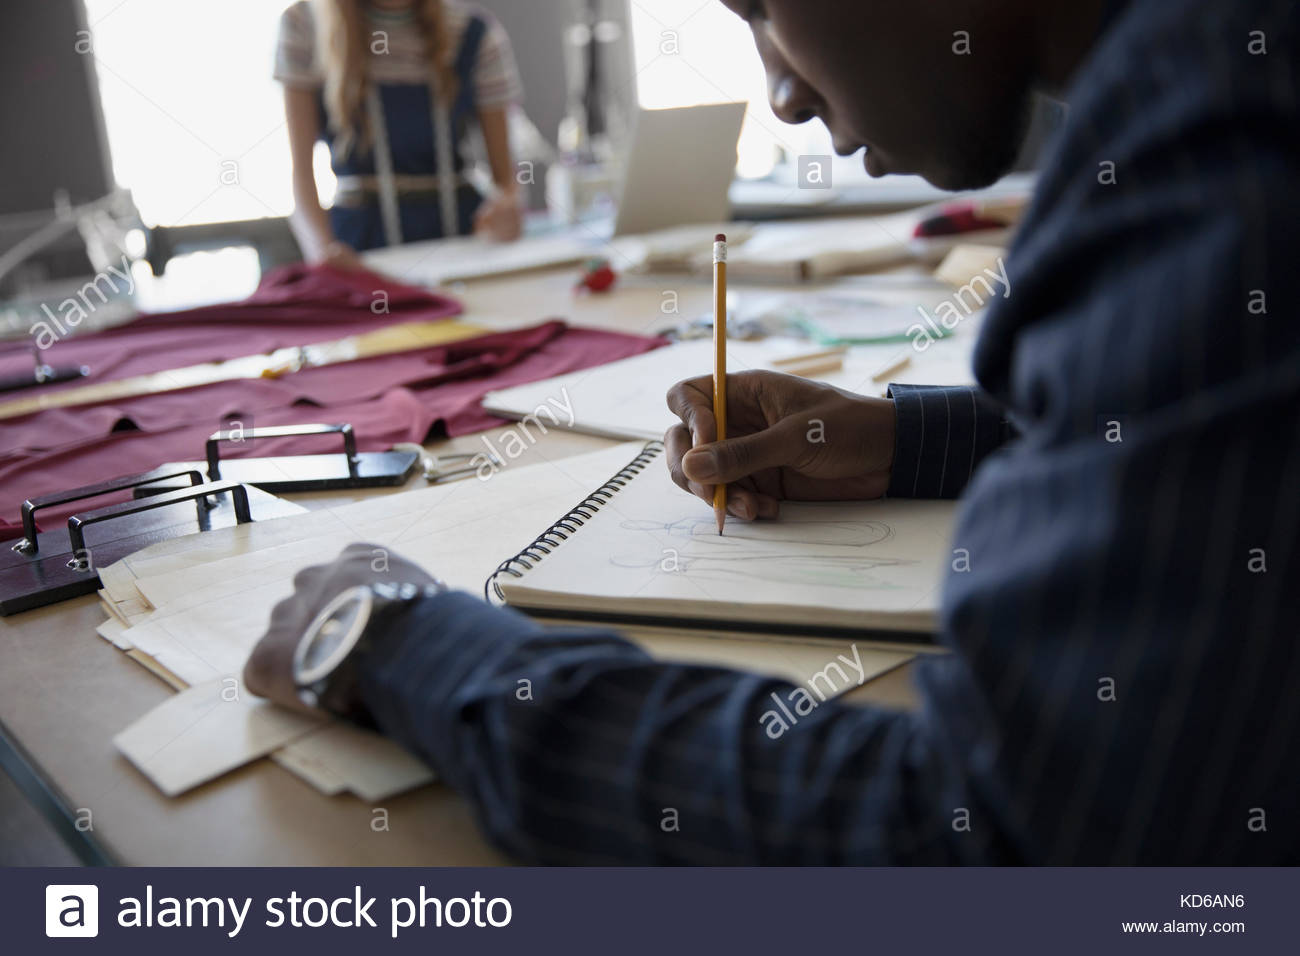 Male fashion design student sketching at workbench - Stock Image